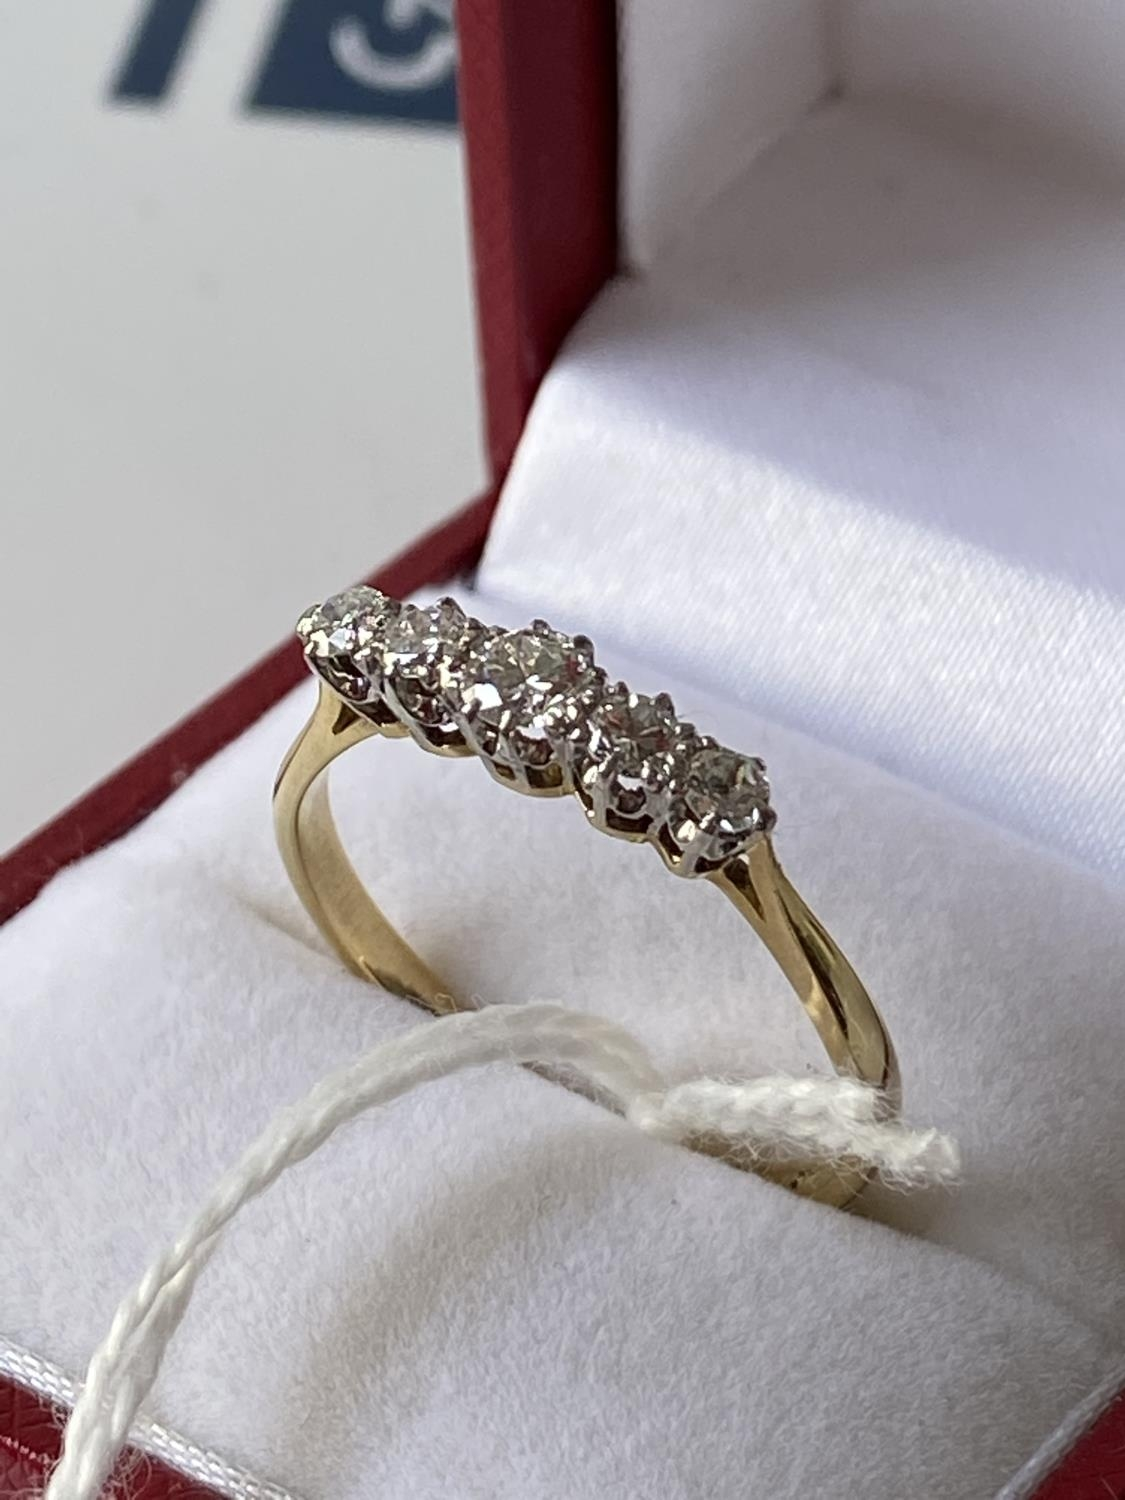 An 18ct gold ladies ring set with 5 brilliant white diamonds [1 inclusion] [size T] [2.73g] - Image 3 of 10